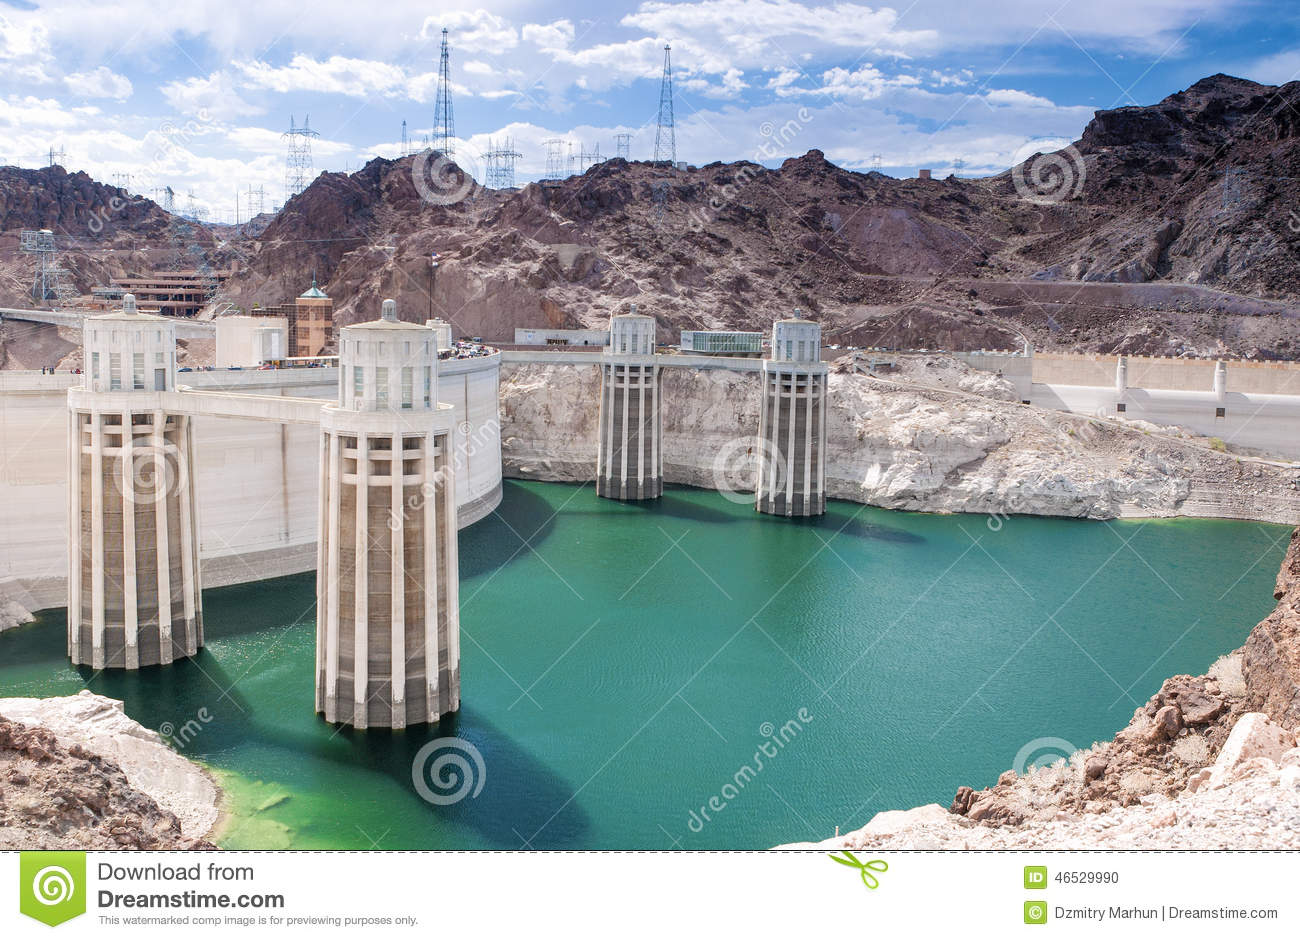 Hoover Dam And Penstock Towers In Lake Mead Of The Colorado Rive.